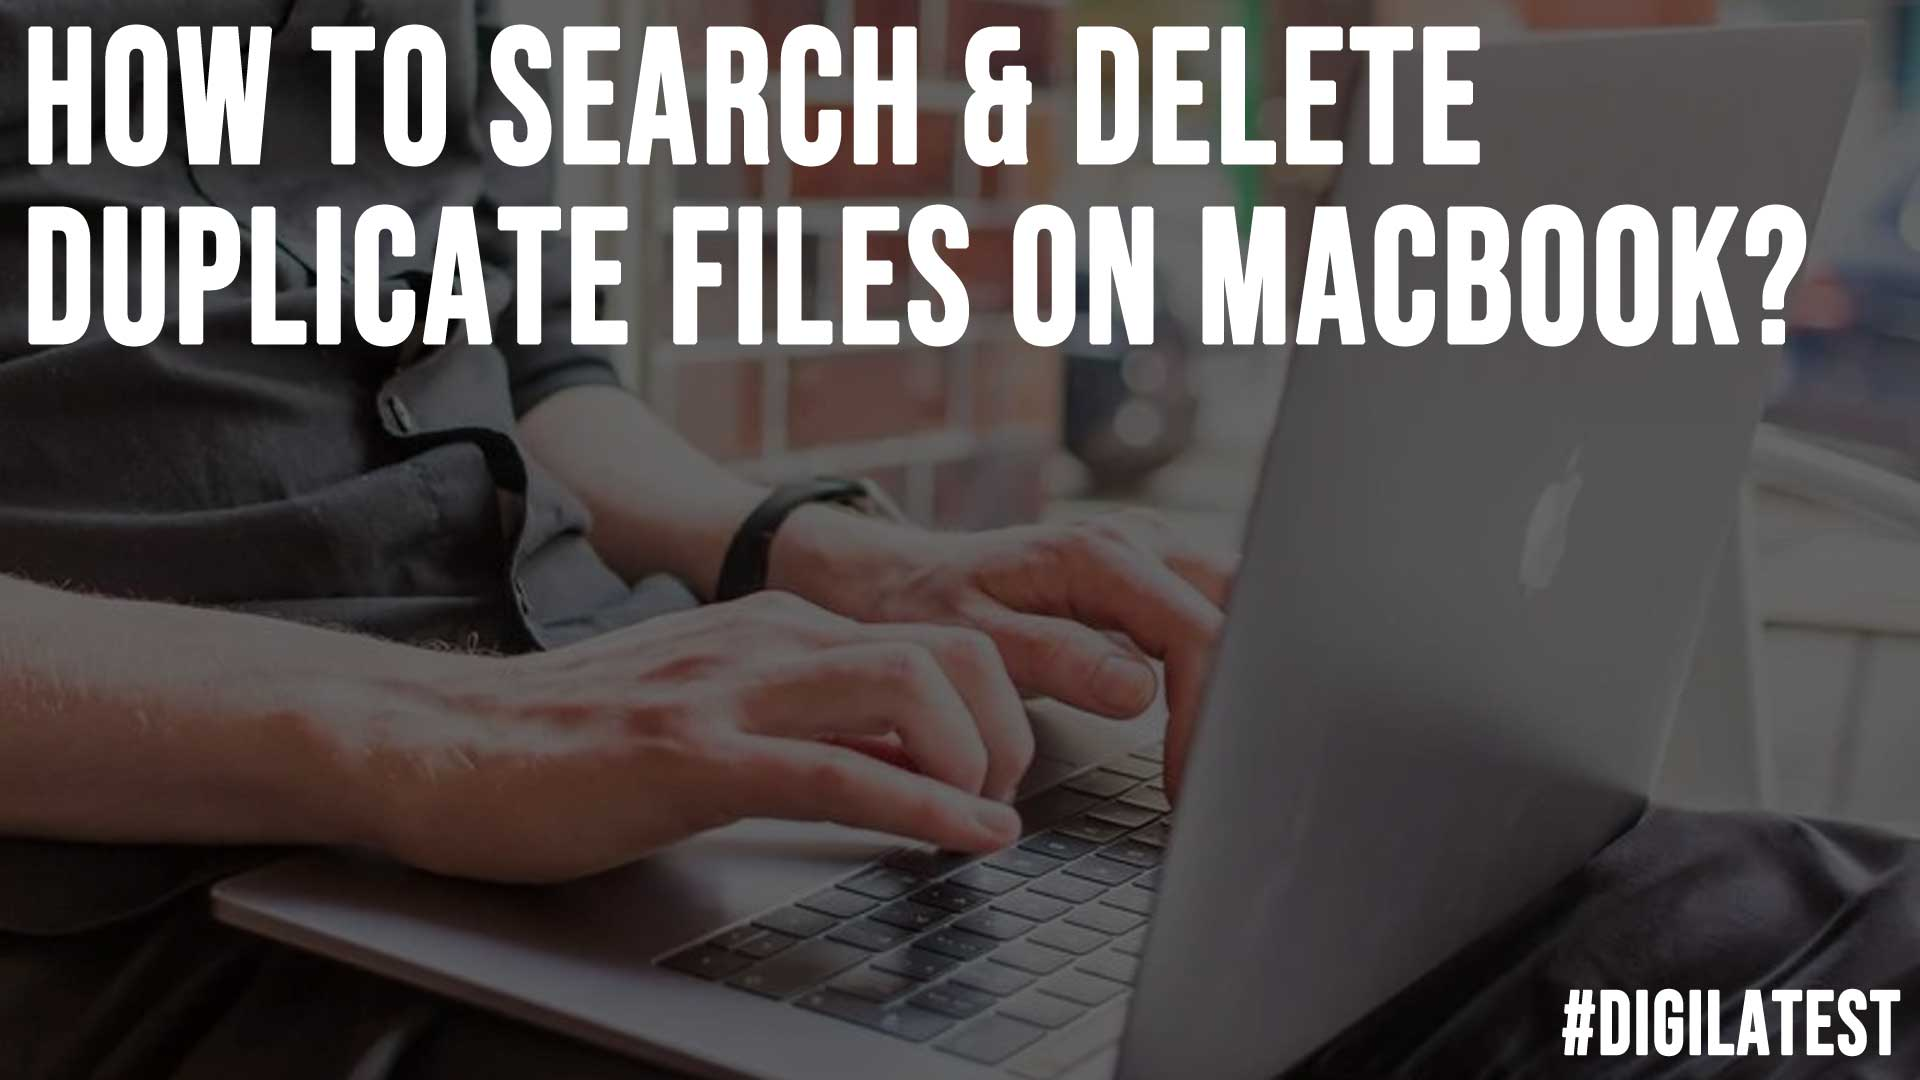 How to Search and Delete Duplicate Files on MacBook